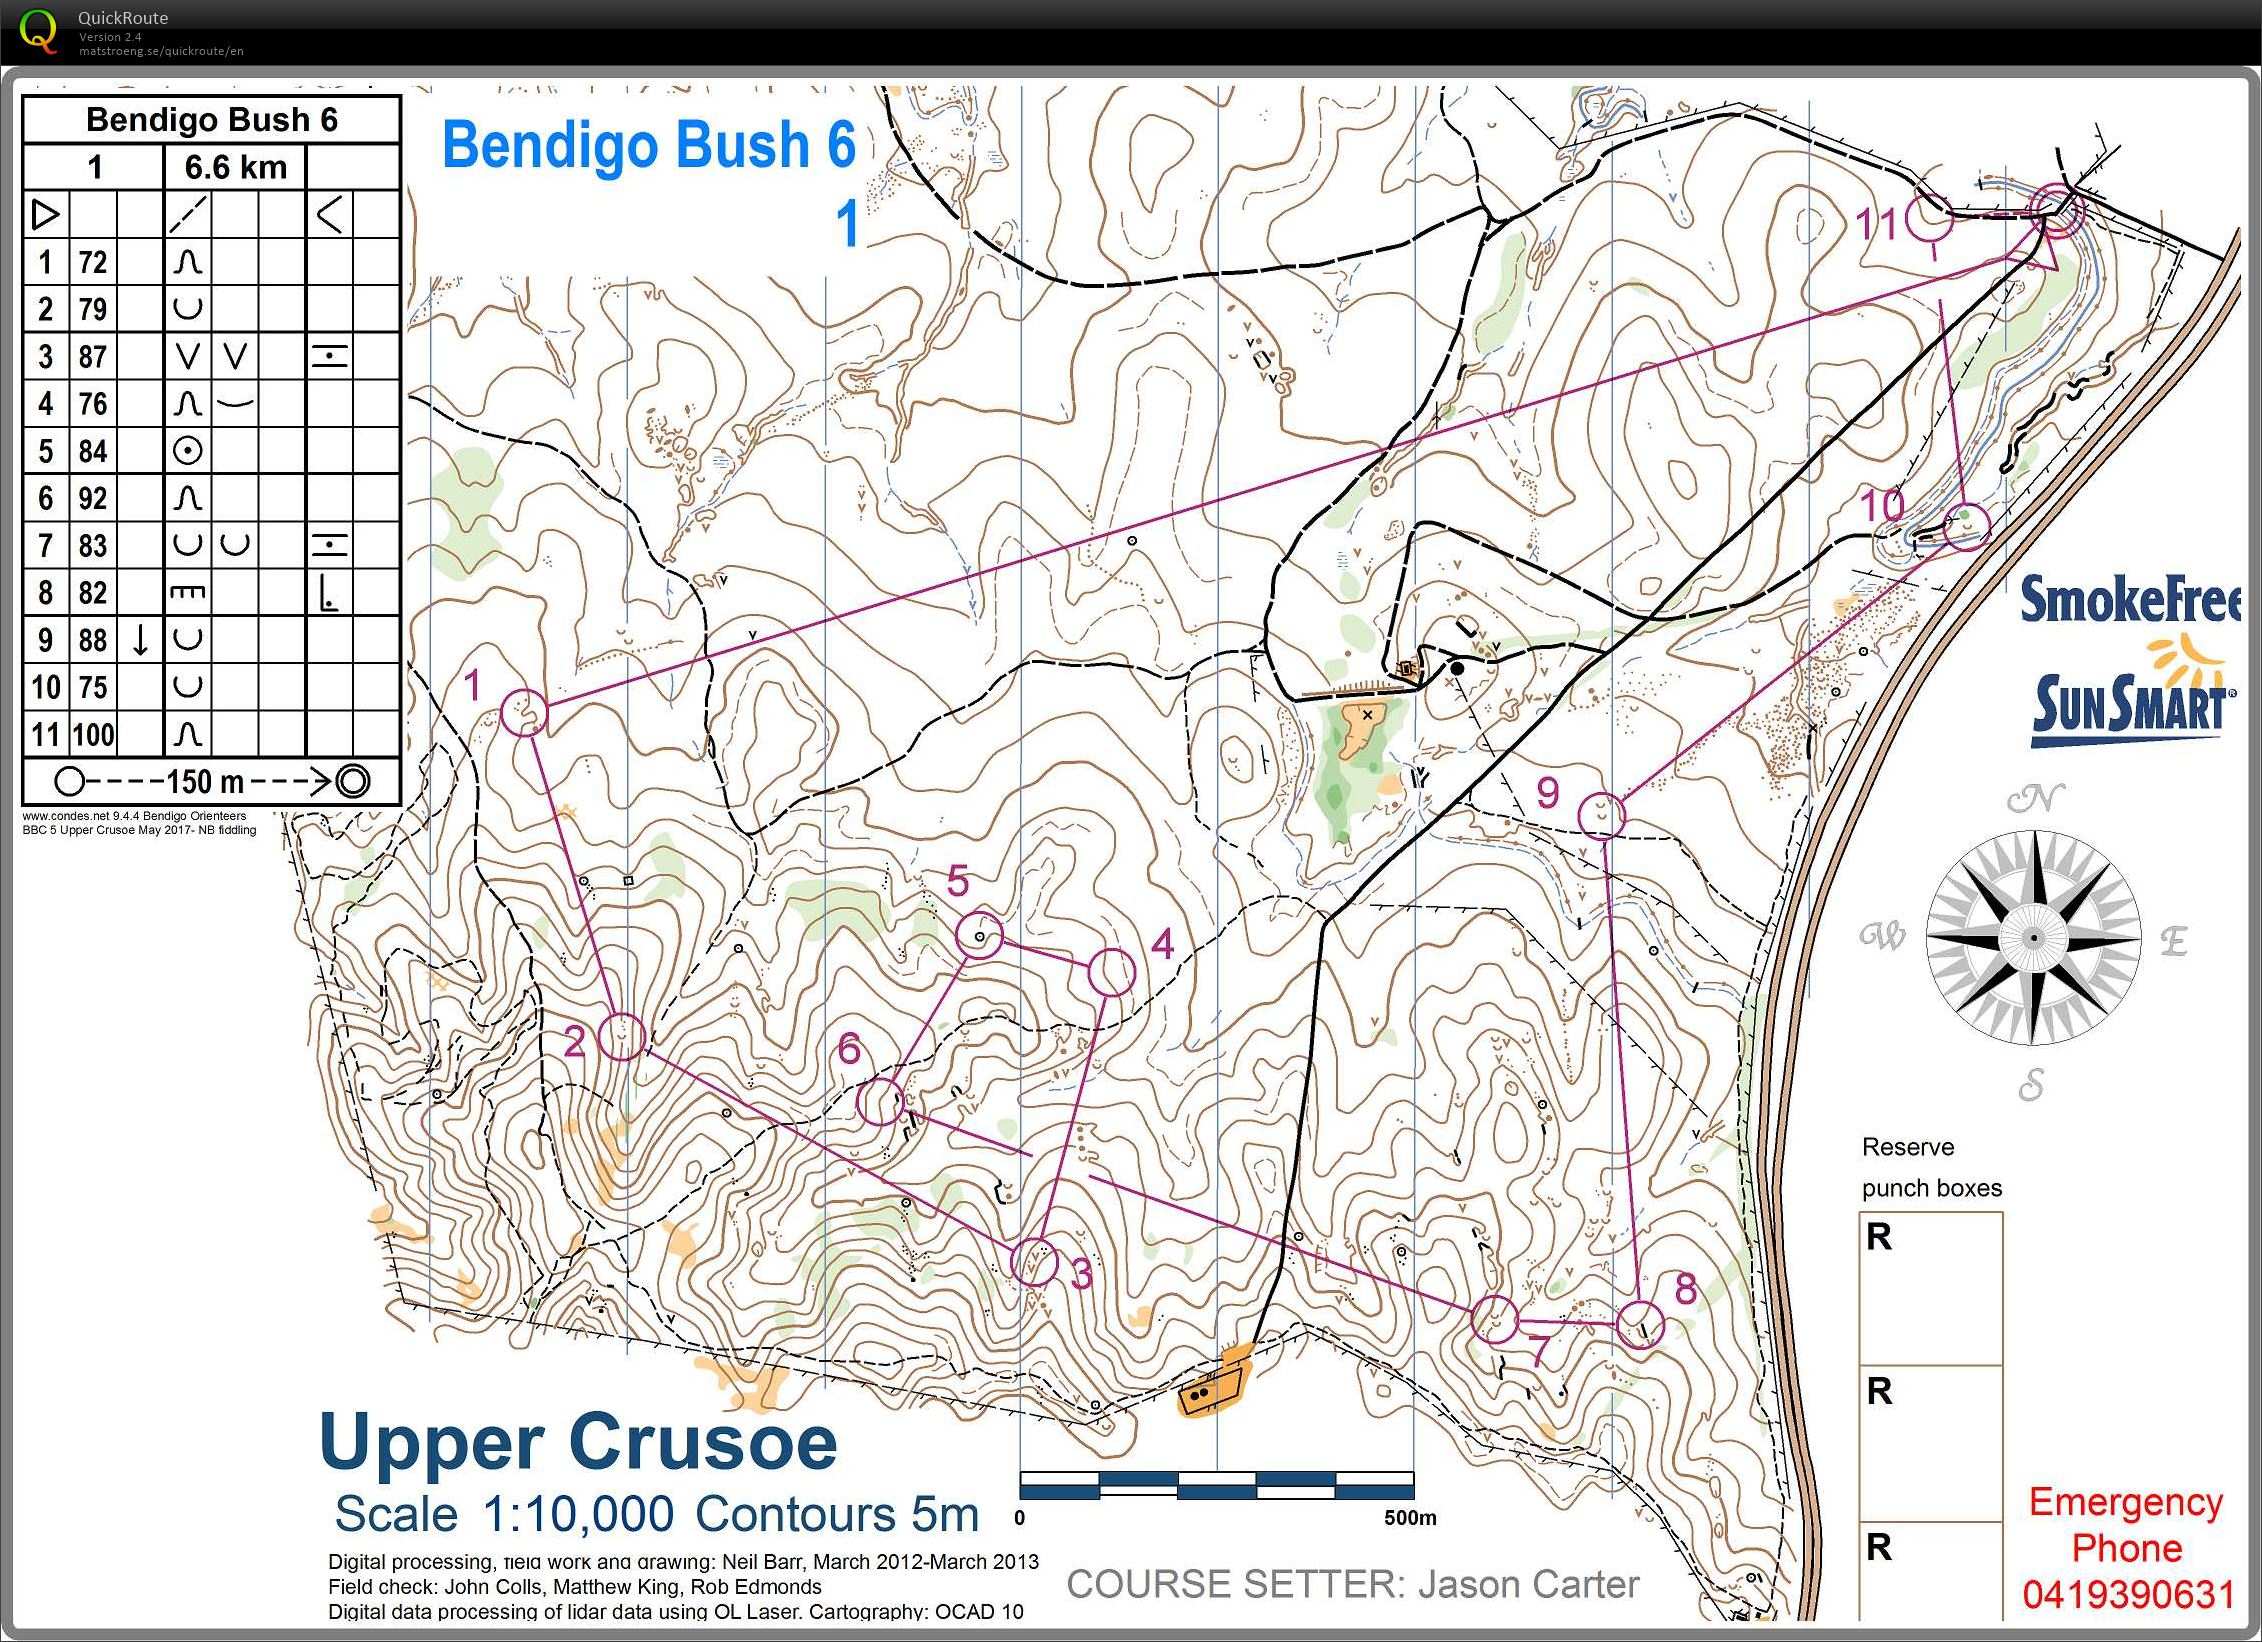 Bendigo Bush 6 May 20th 2017 Orienteering Map from Jim Russell